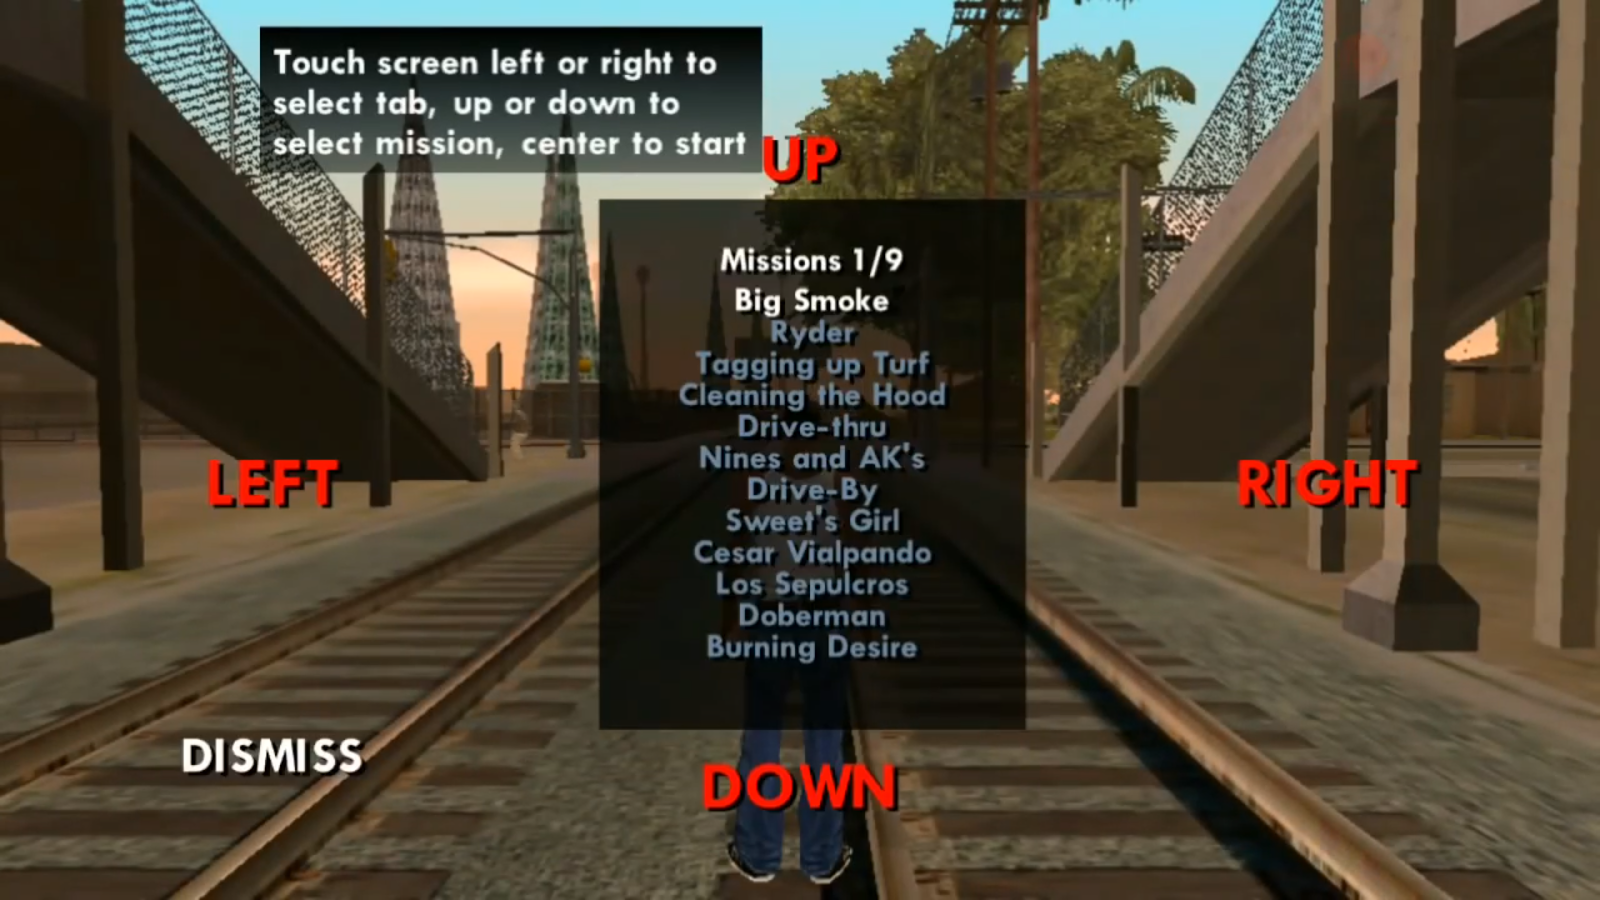 How to miss a mission in GTA (GTA)